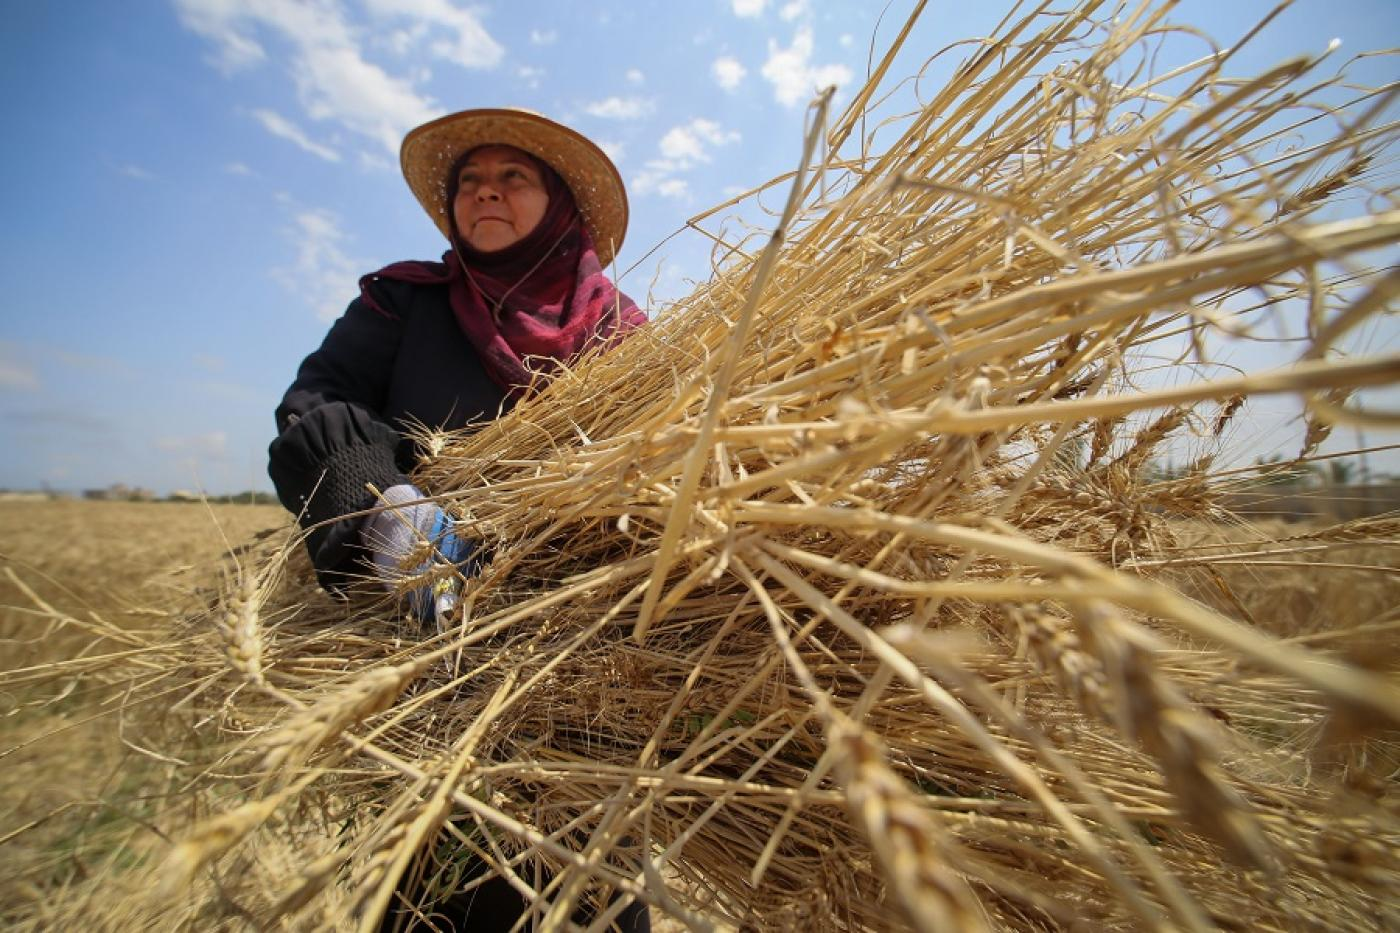 Harvest under fire: The plight of Gaza's female farmers